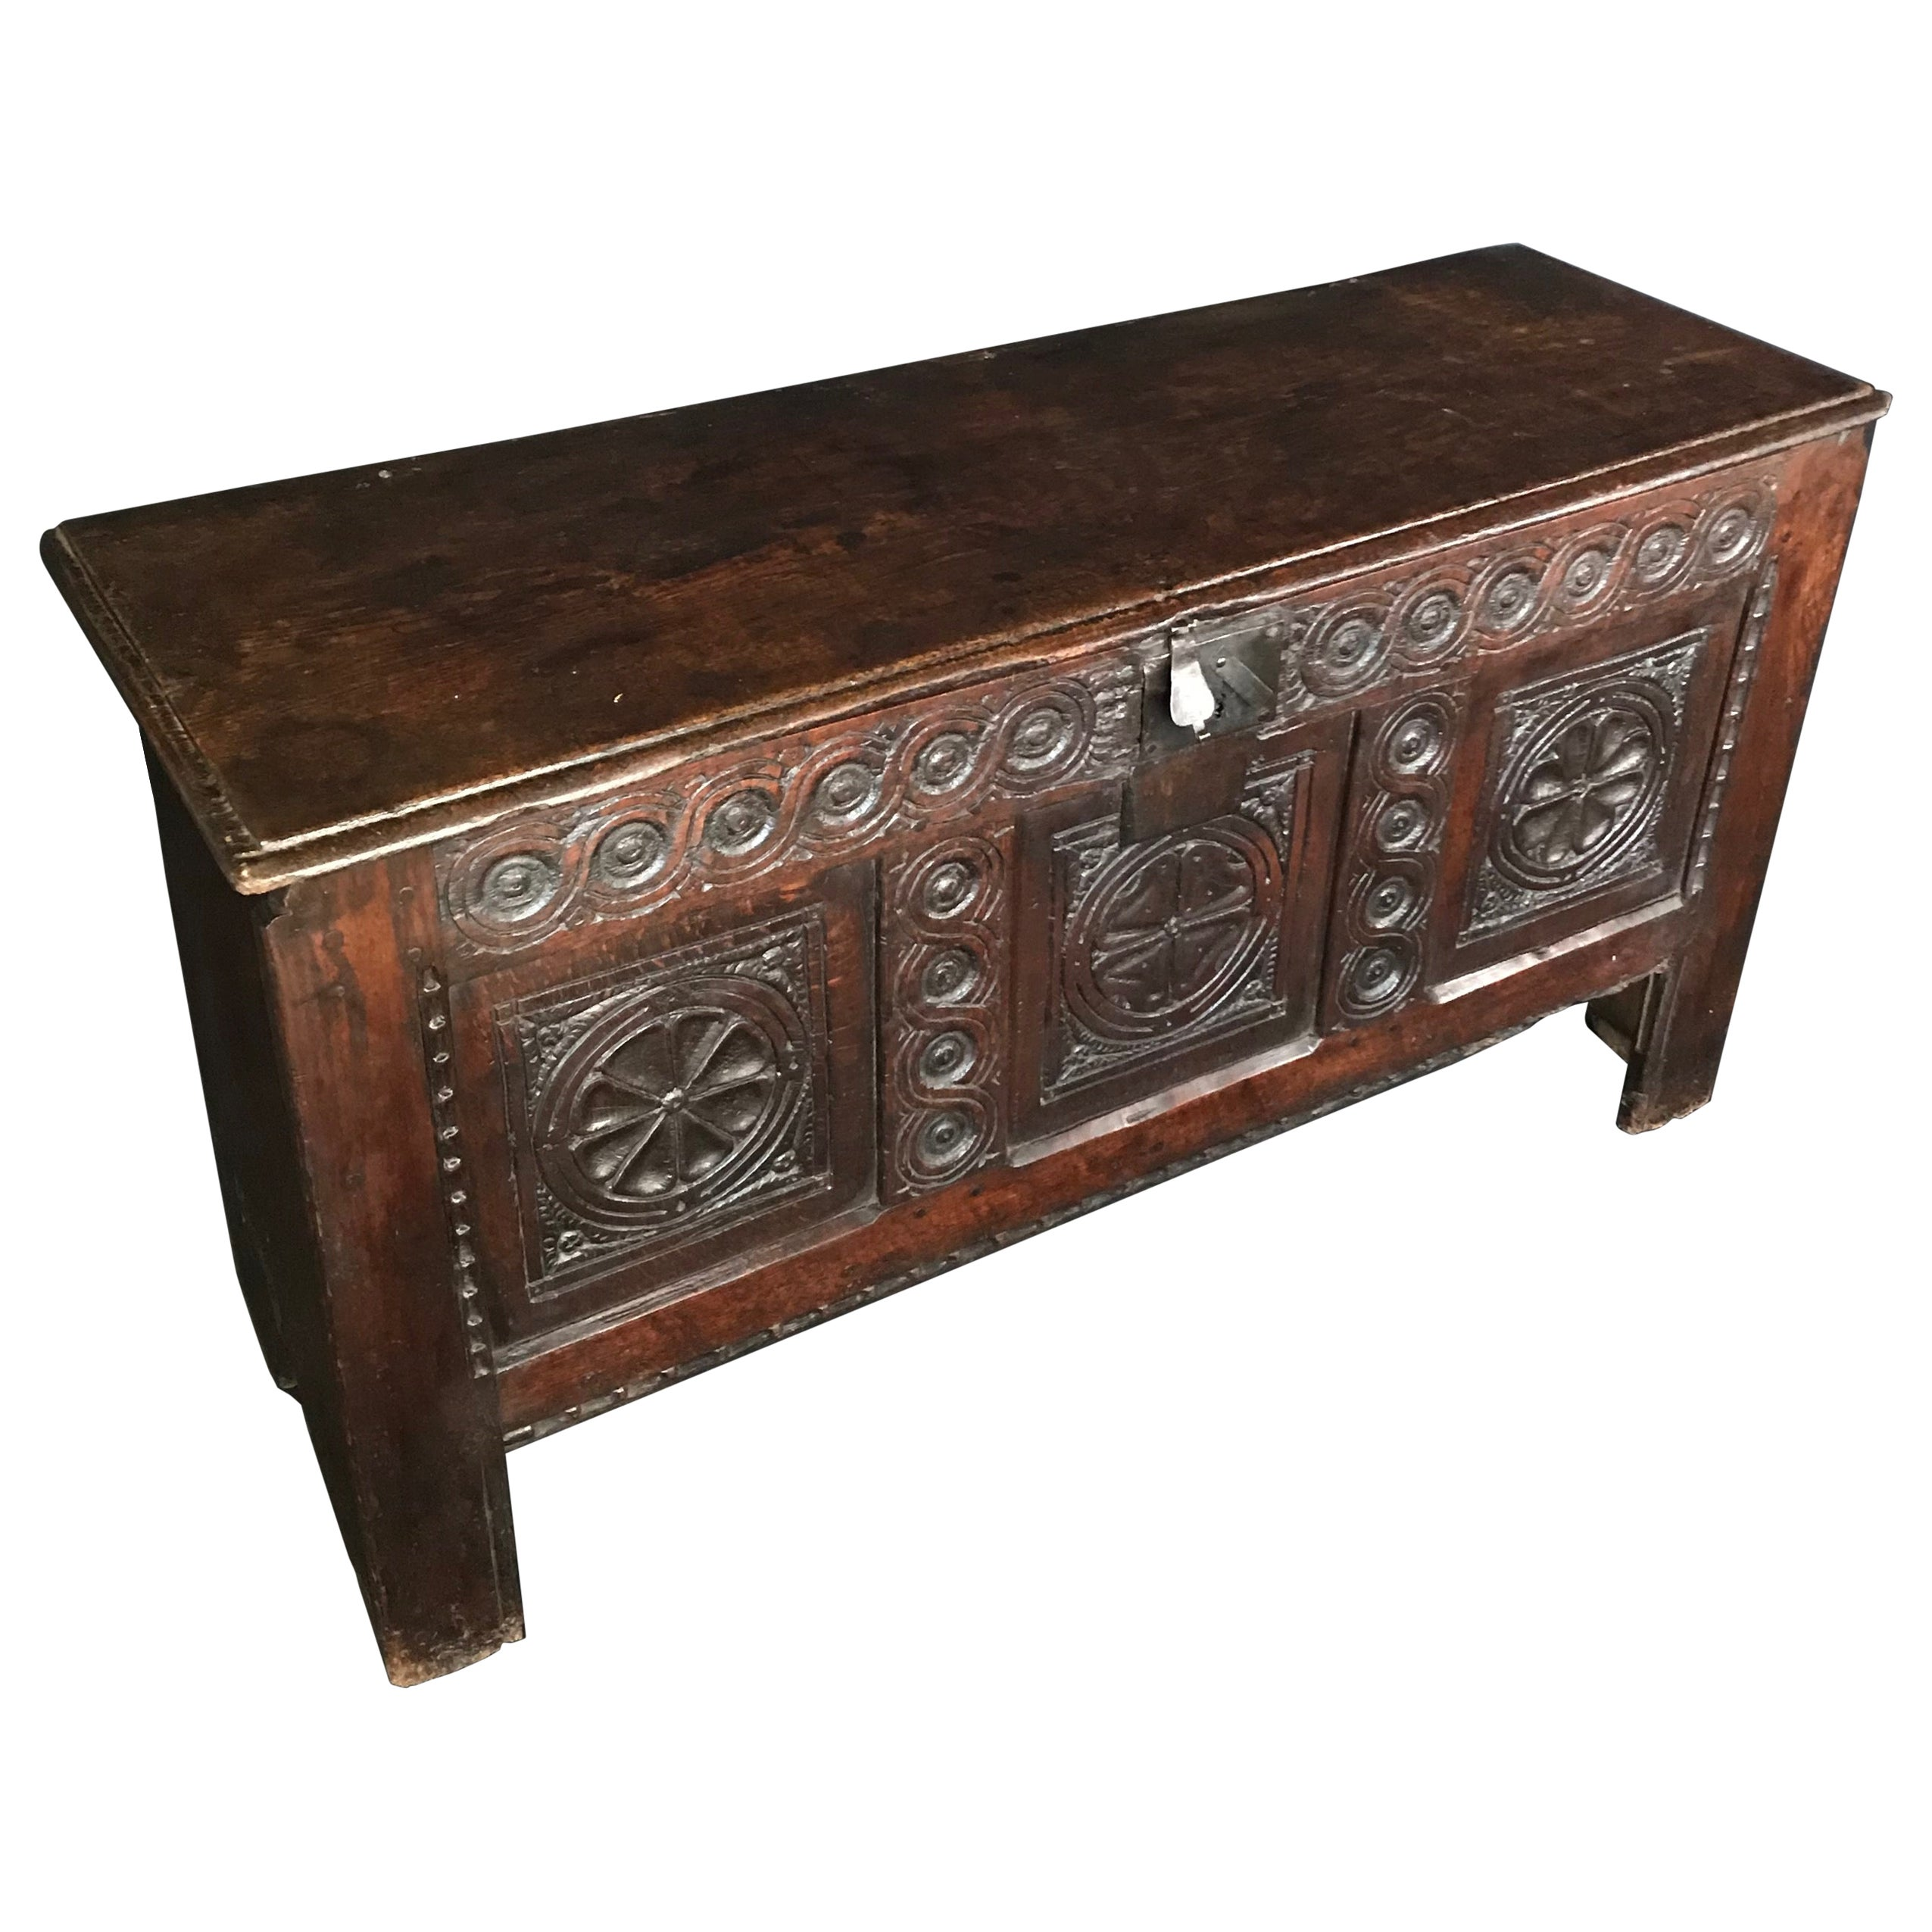 Super Early Antique 18th Century French Carved Coffer Chest